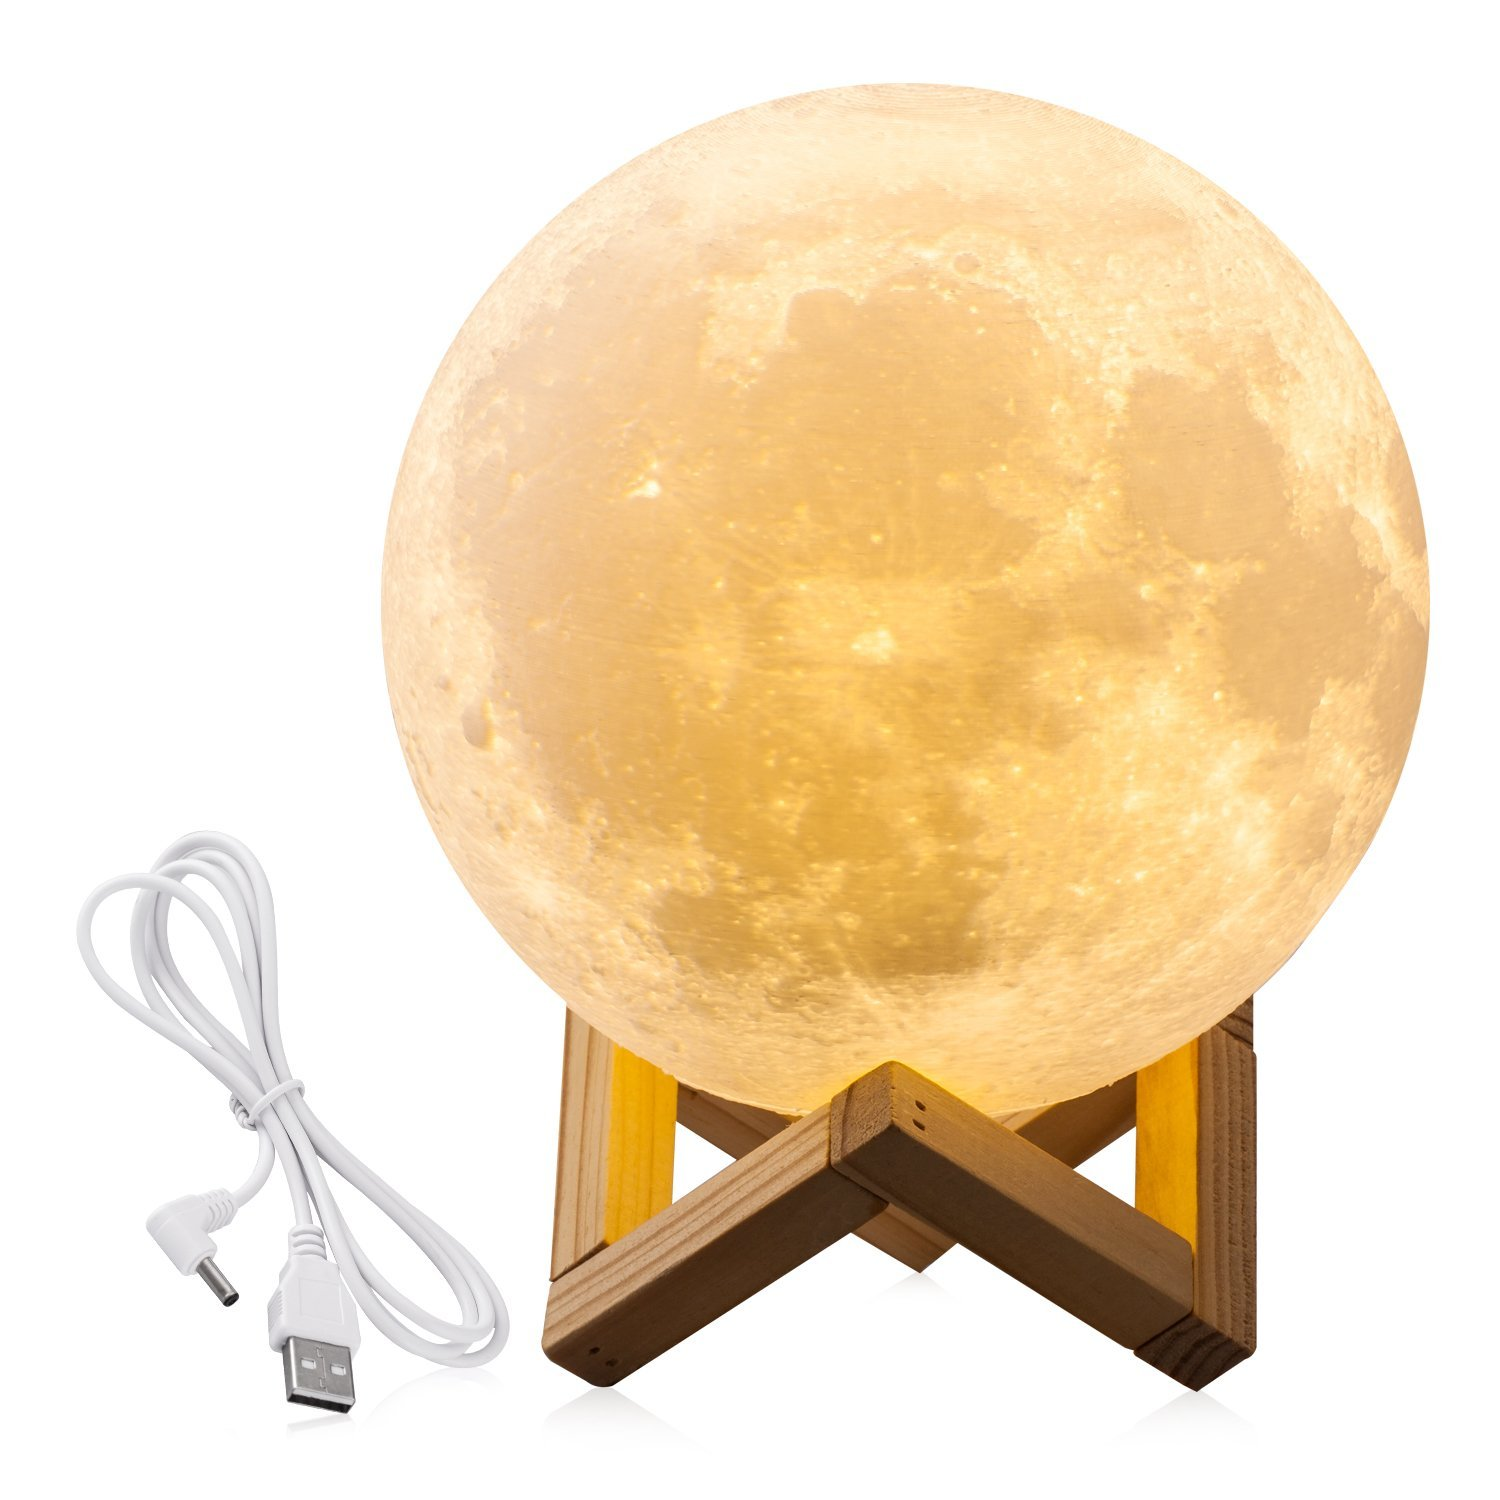 "7.1"" Large Moon Light, 3D Printing Moon Lunar LED Night Light Lamp with Wooden Stand,White"